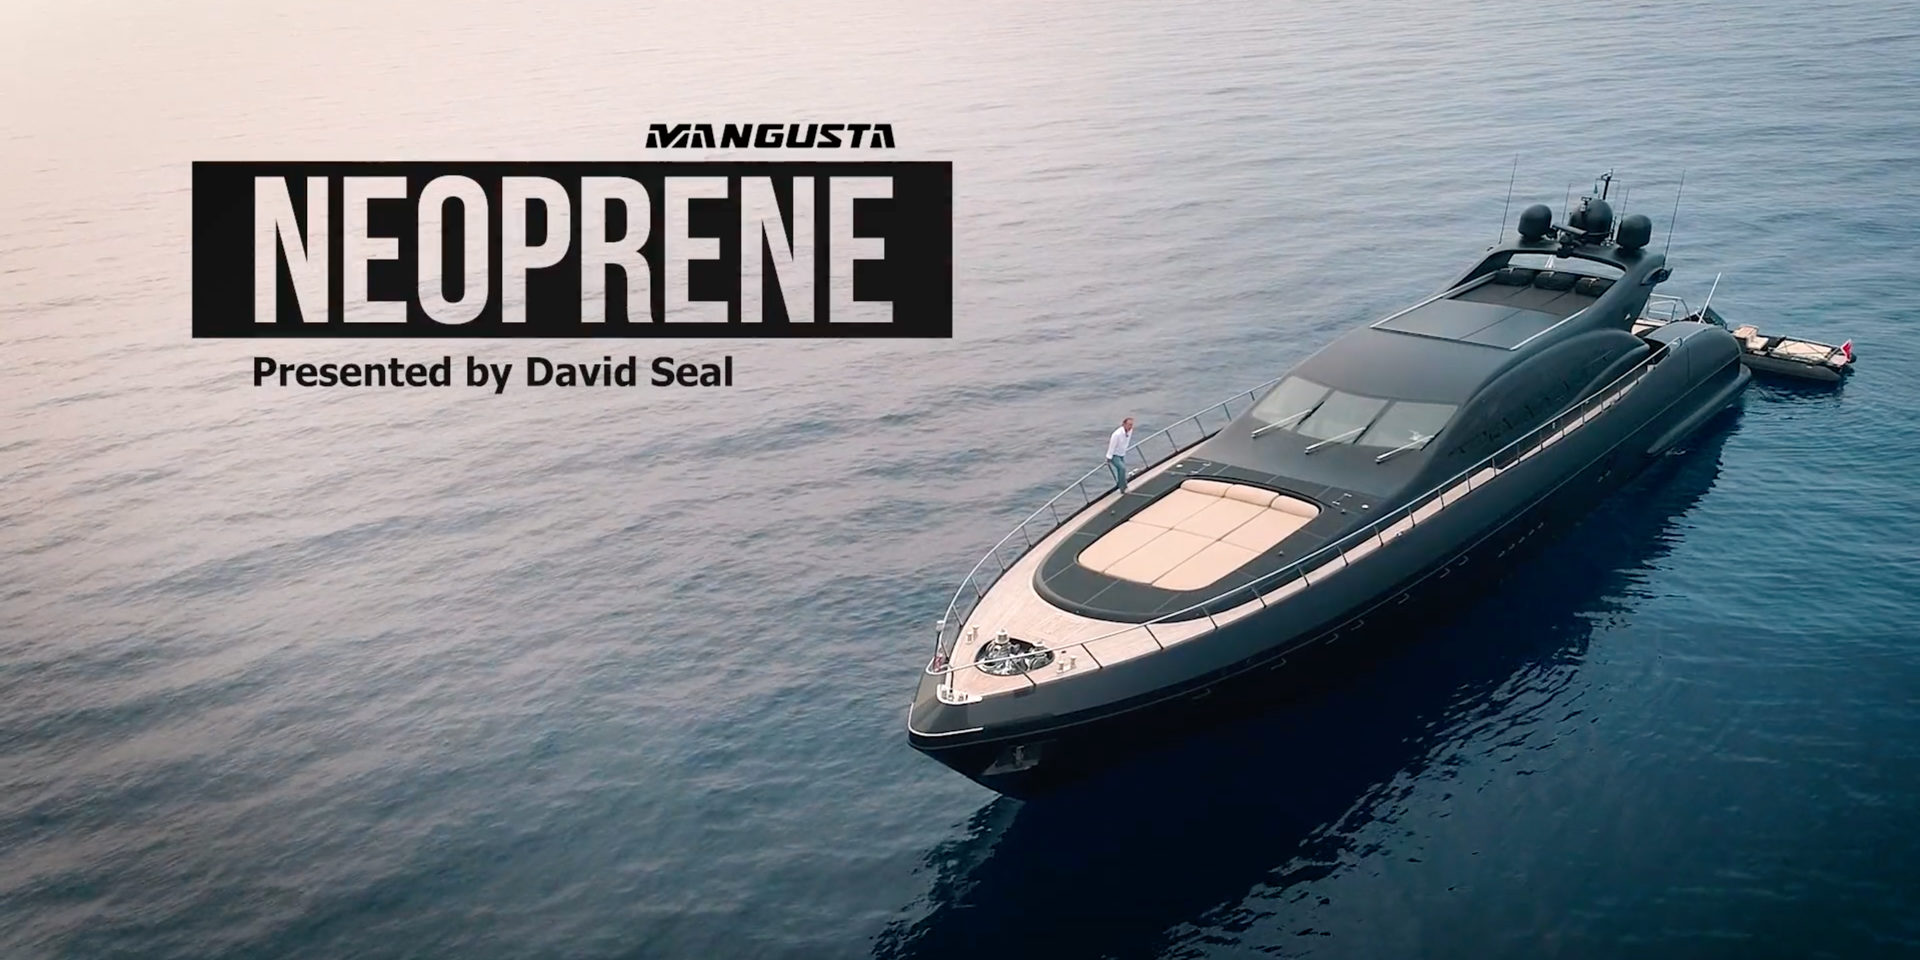 MANGUSTA 108 'NEOPRENE' – SHORT DOCUMENTARY